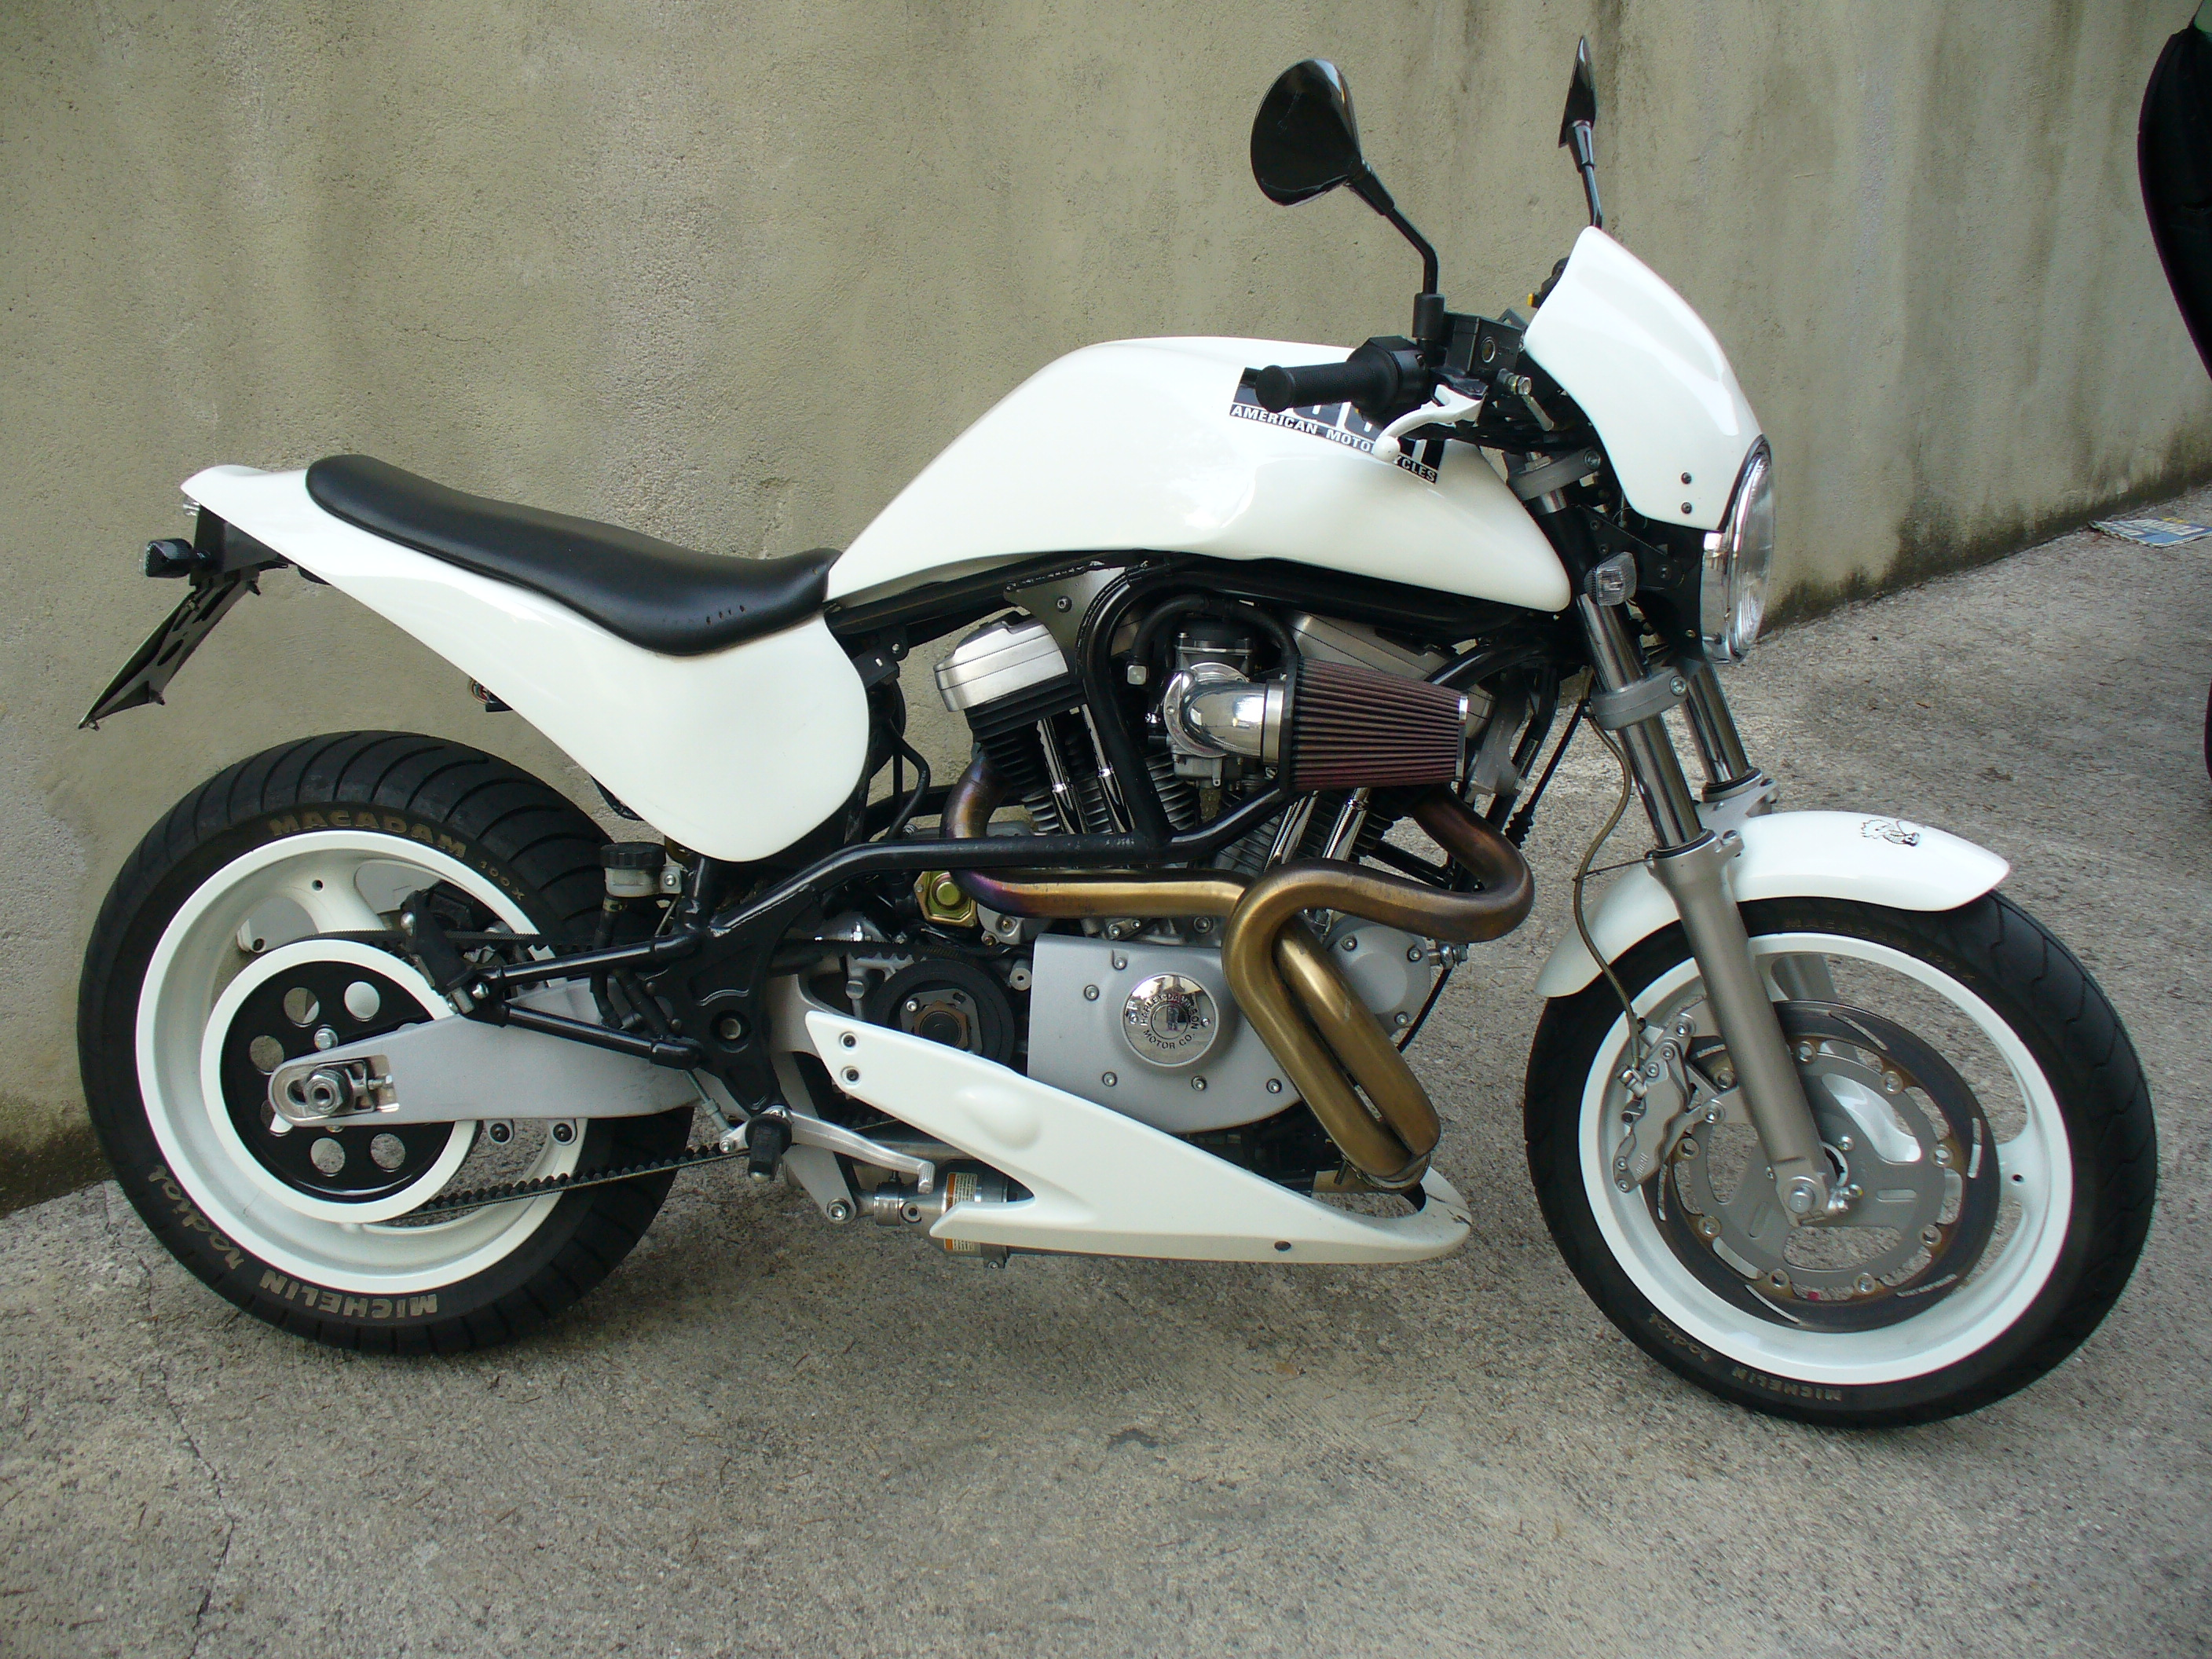 Permalink to Buell Cafe Racer